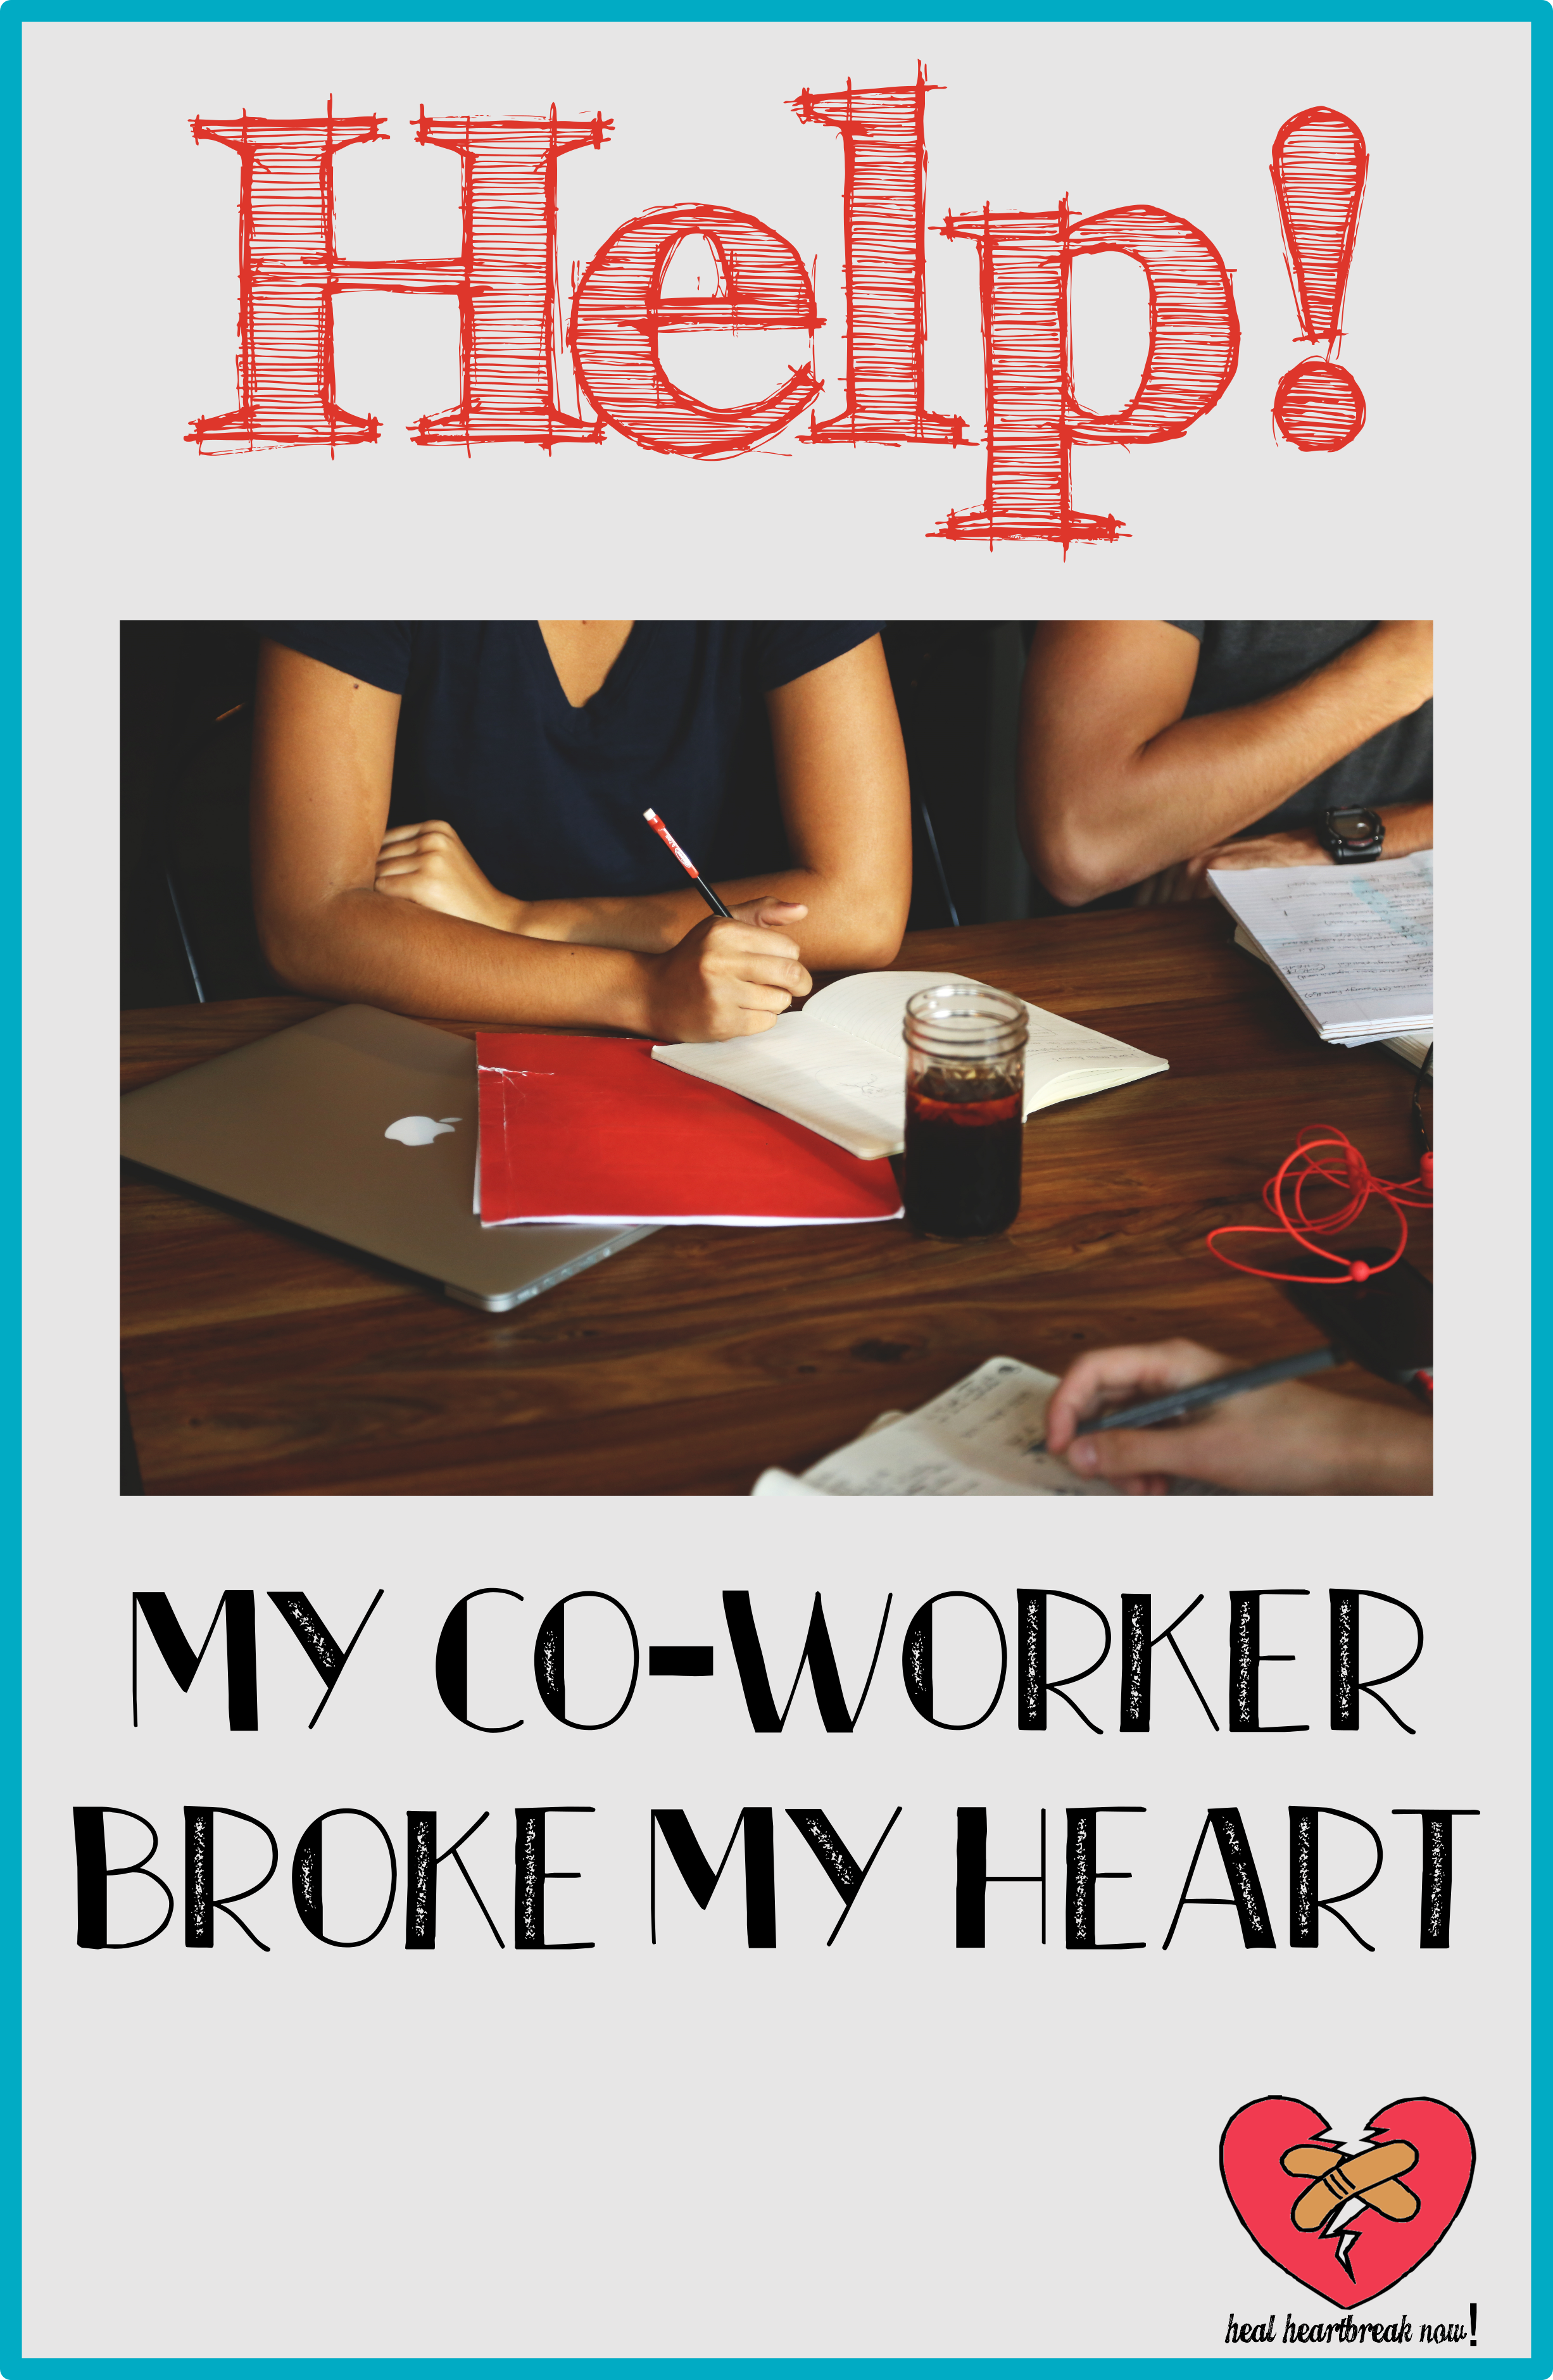 My Co-Worker Broke My Heart | Learn what you should do if your office romance goes sour from Heal Heartbreak Now!.